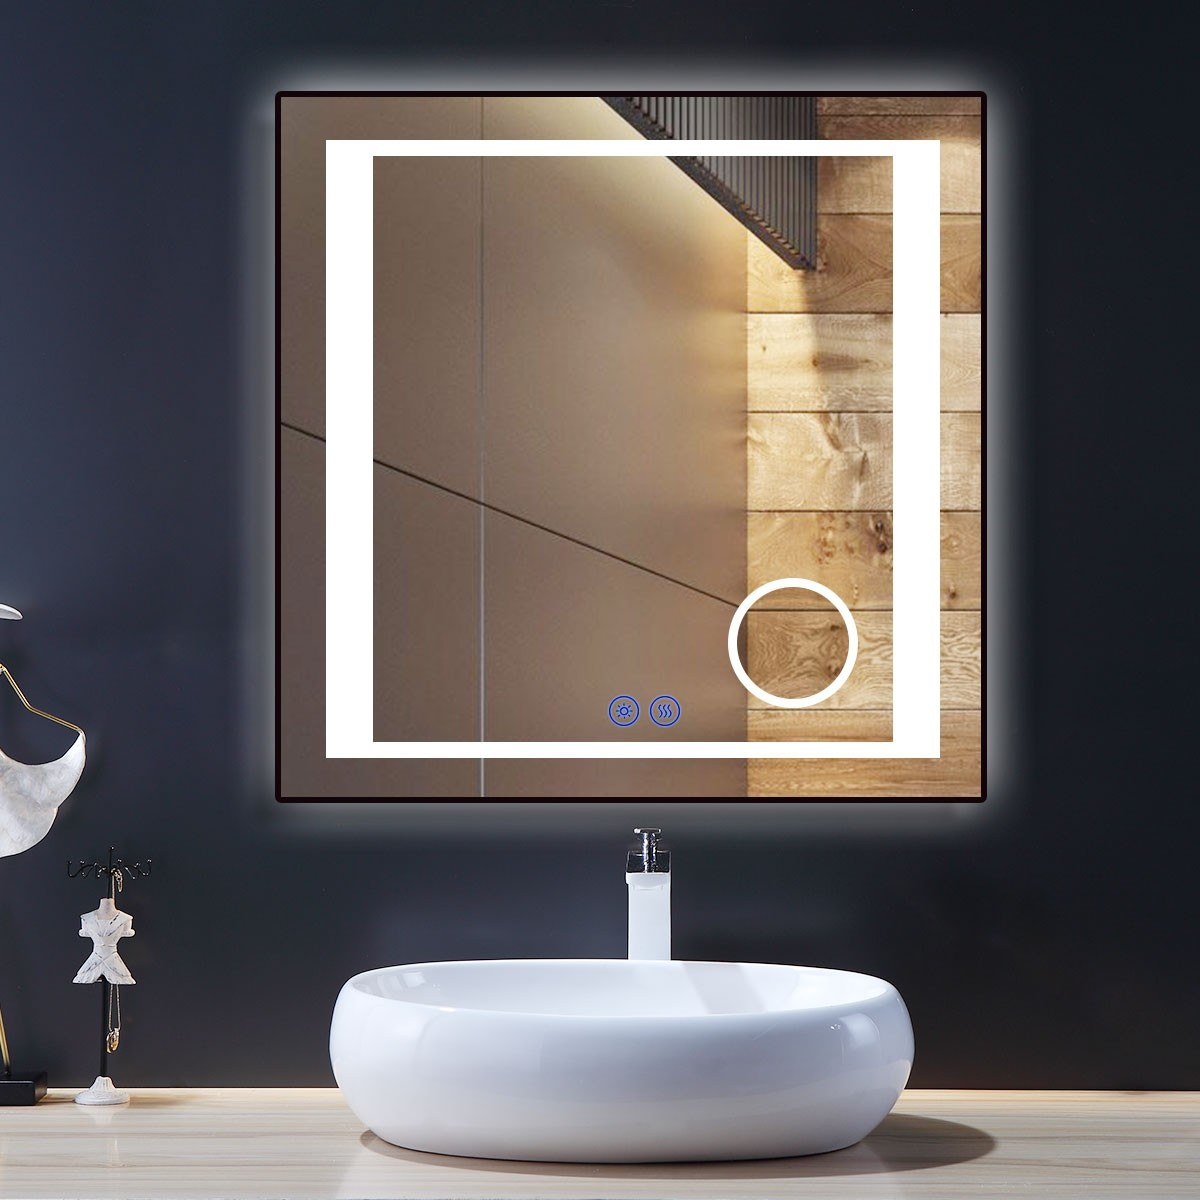 DECORAPORT 36 x 36 Inch LED Bathroom Mirror/Dress Mirror with Touch Button, Magnifier, Anti Fog, Dimmable, Vertical & Horizontal Mount (KT12-3636)